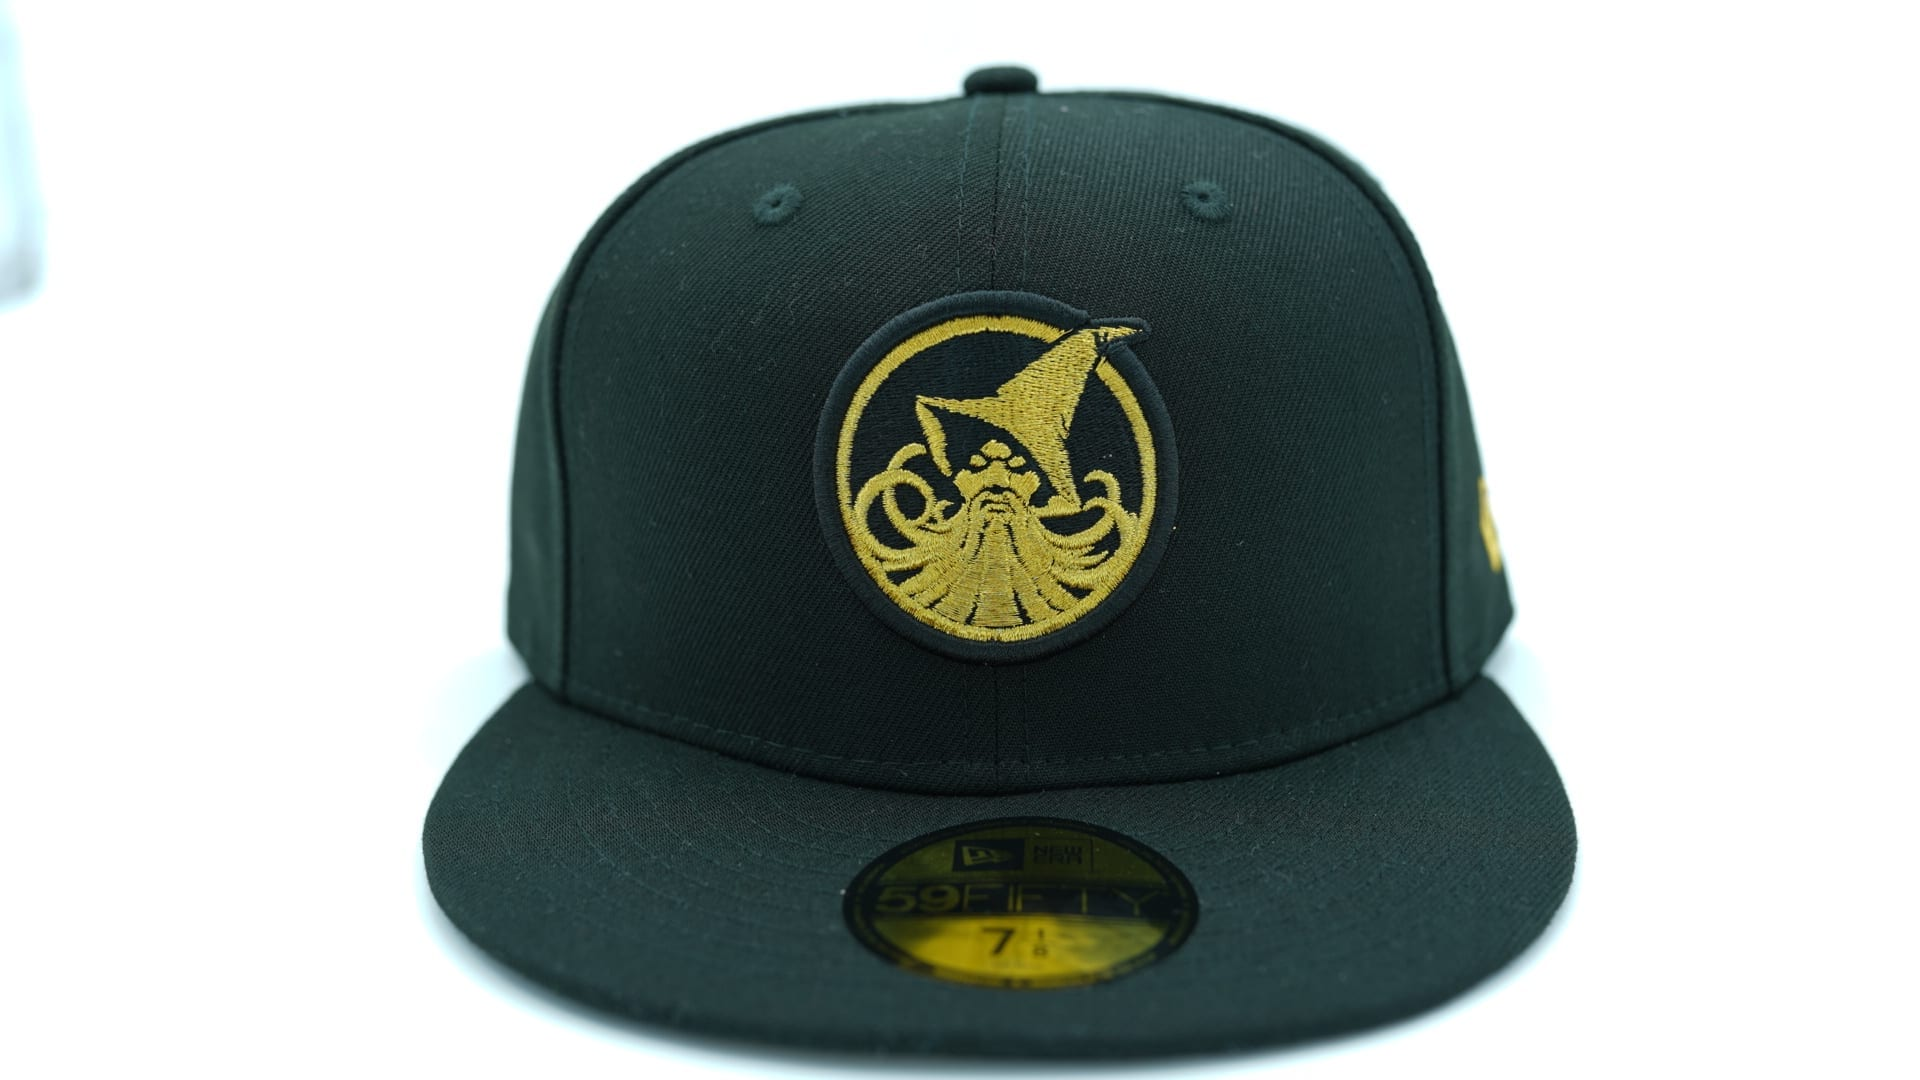 Disney X New Era「mickey Silhouette」59fifty Fitted Baseball